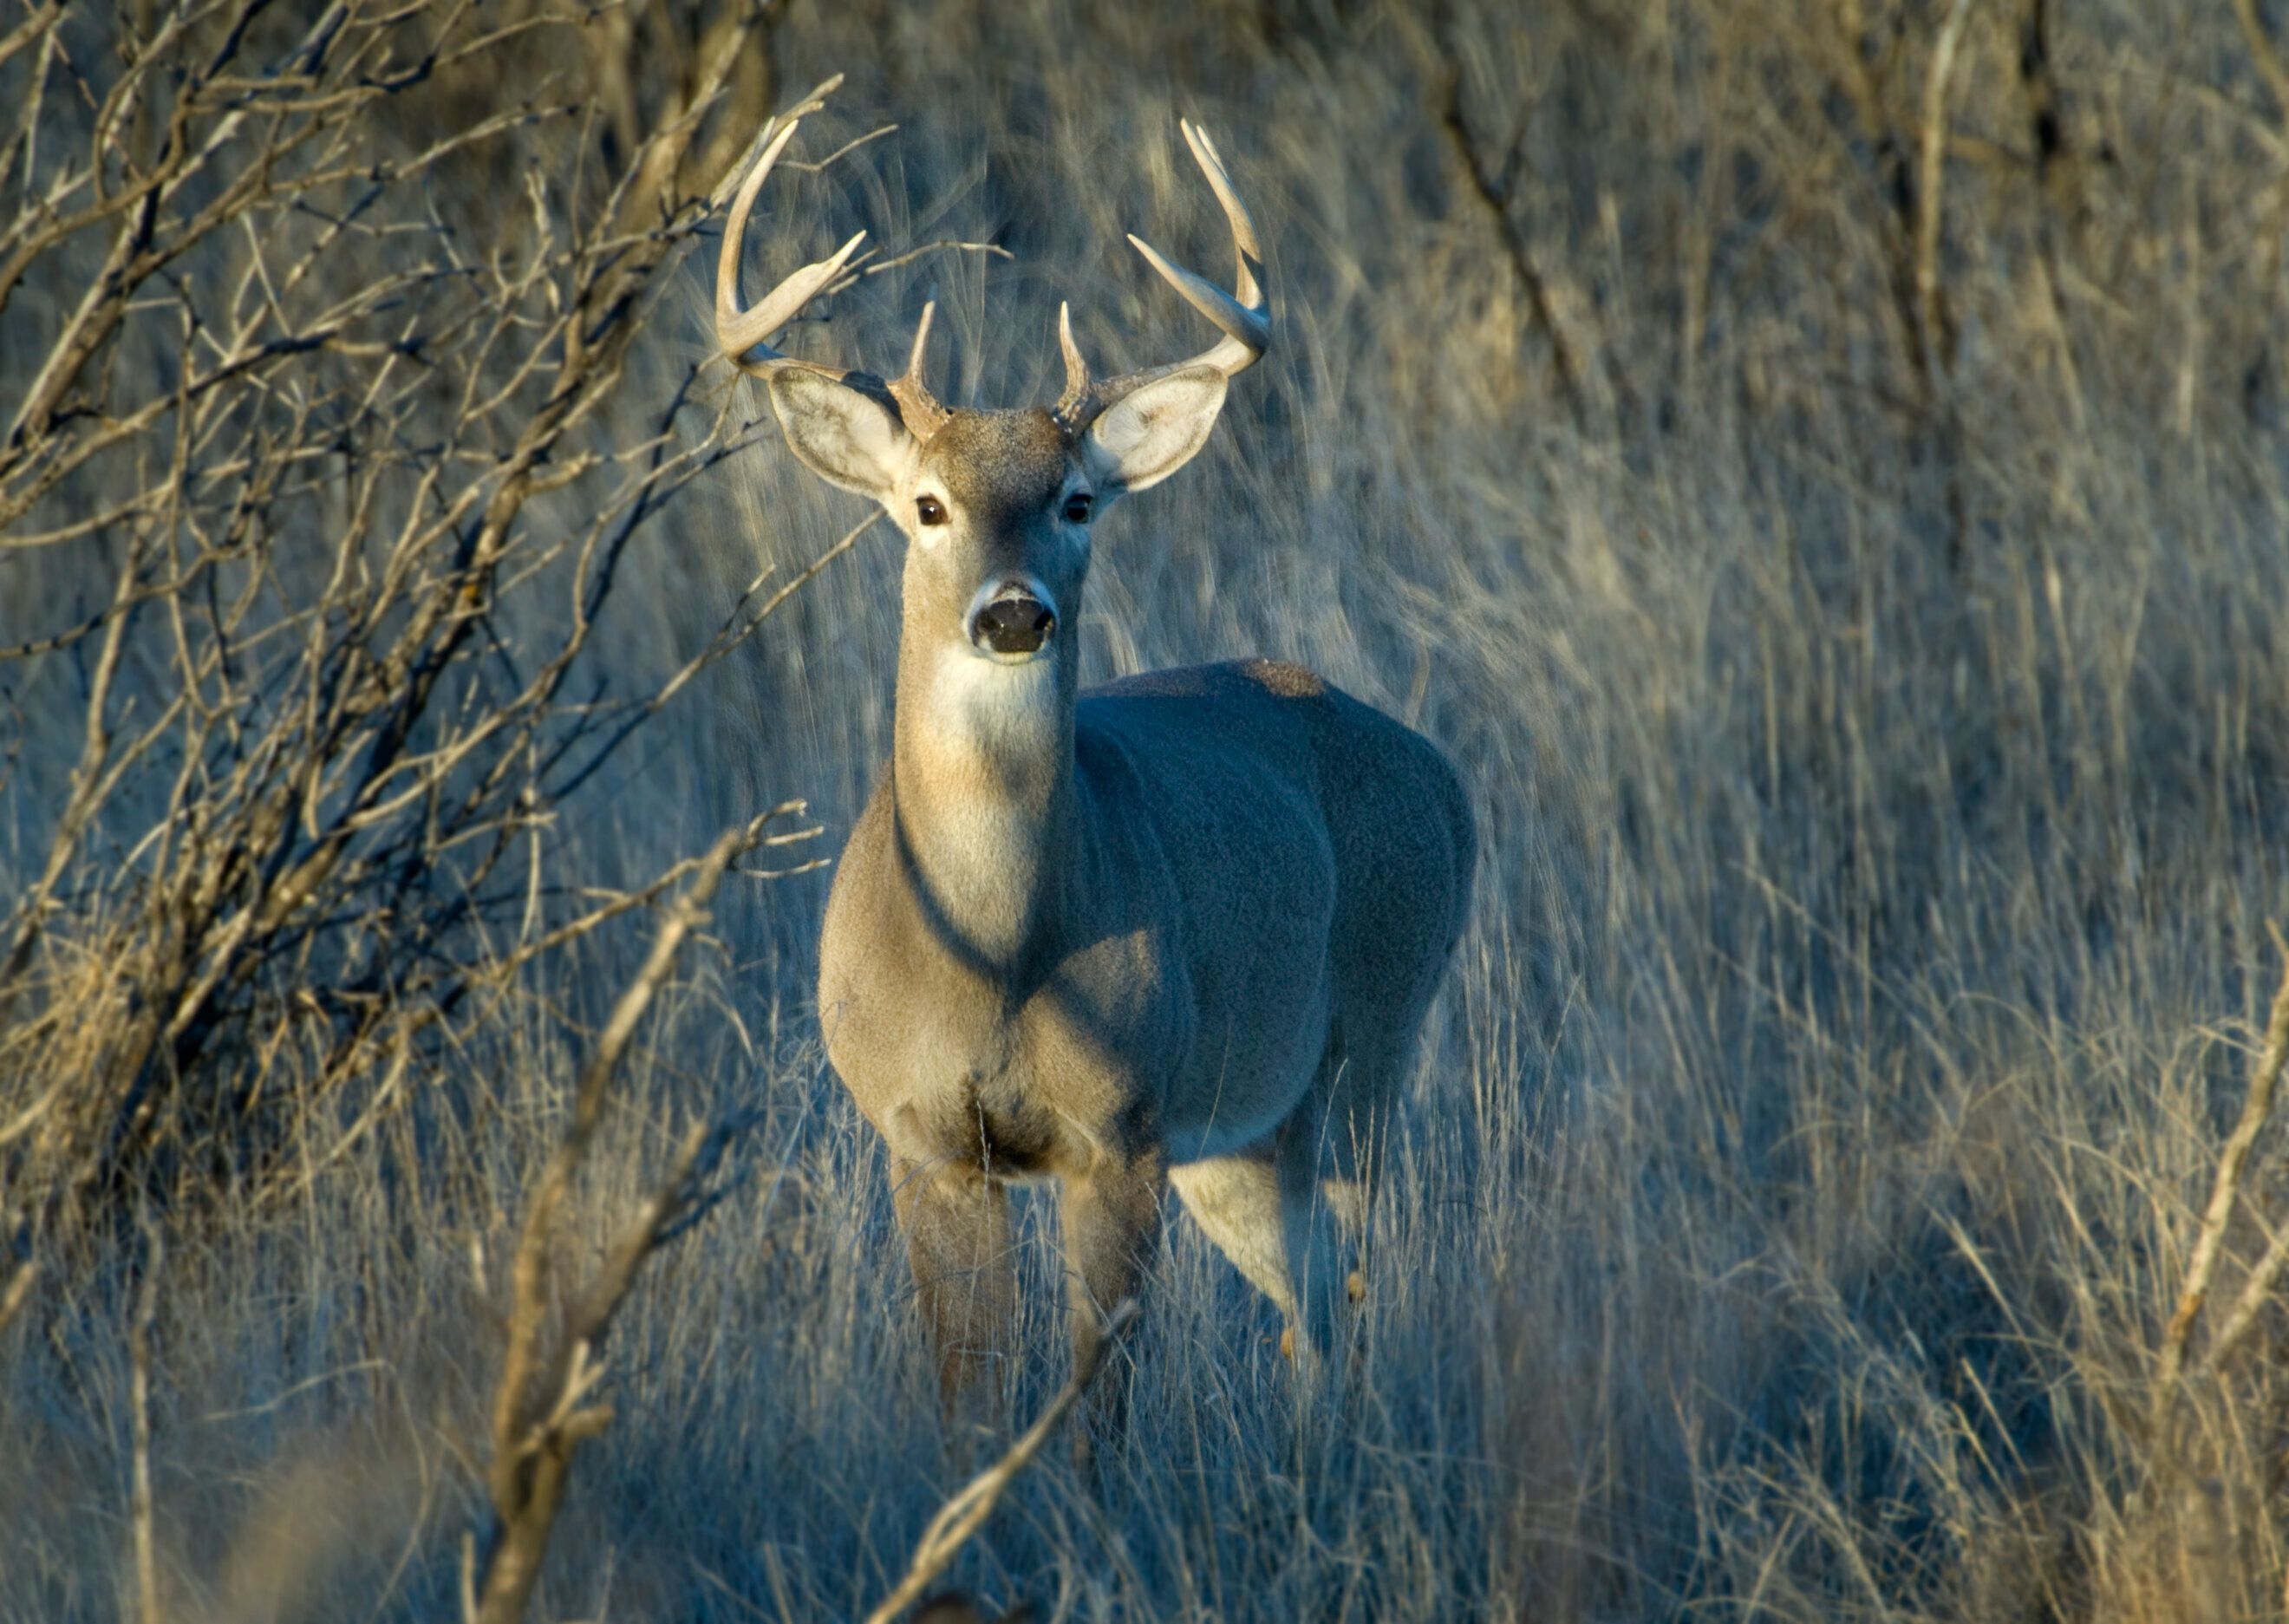 A whitetail deer in the mesquite of Texas.